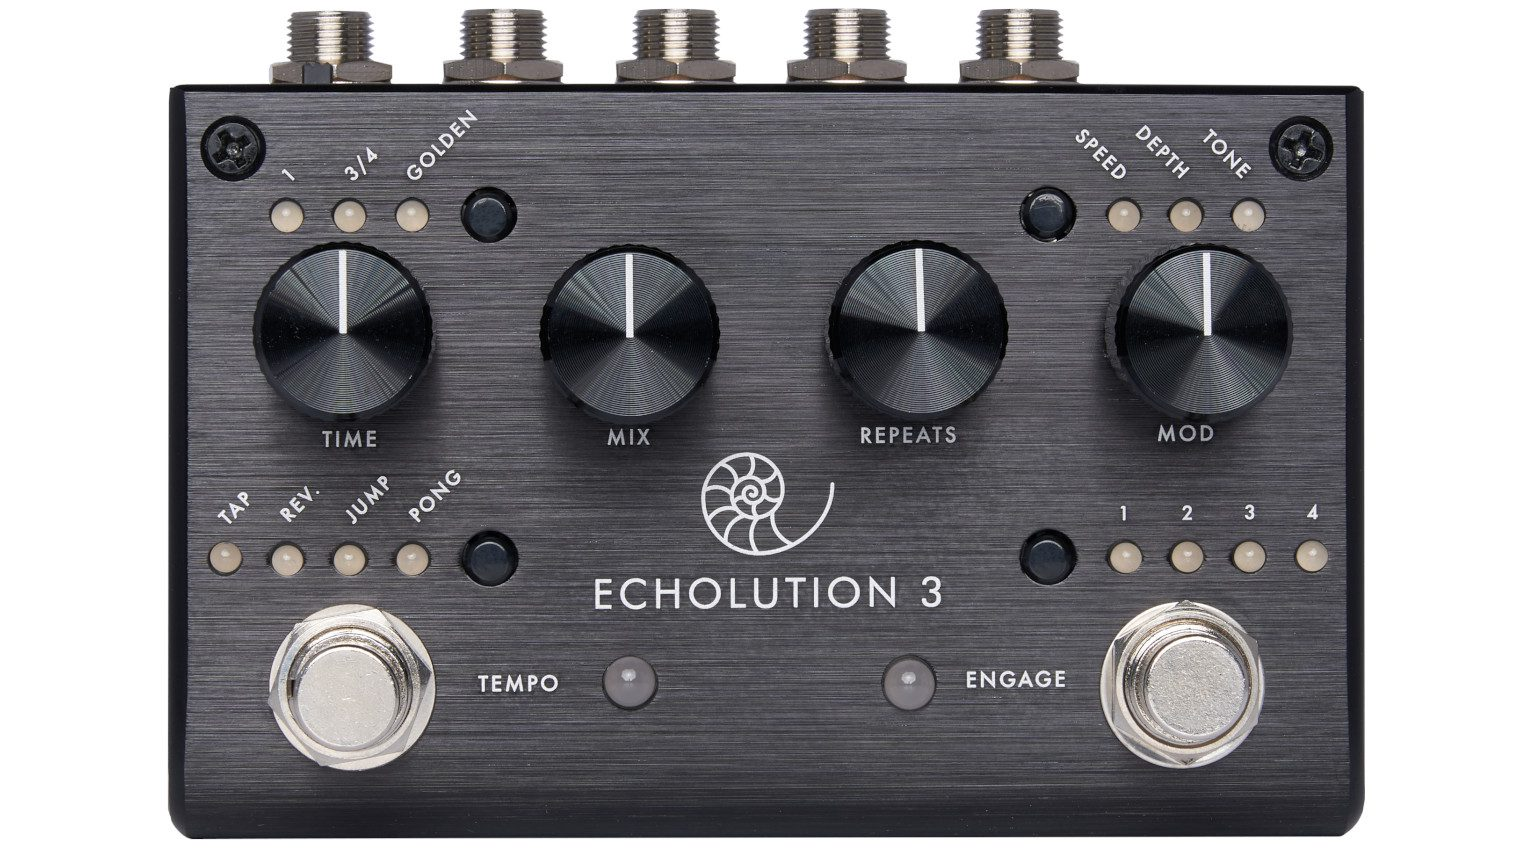 Pigtronix Echolution 3 Stereo Multi-Tap Delay could set new standards